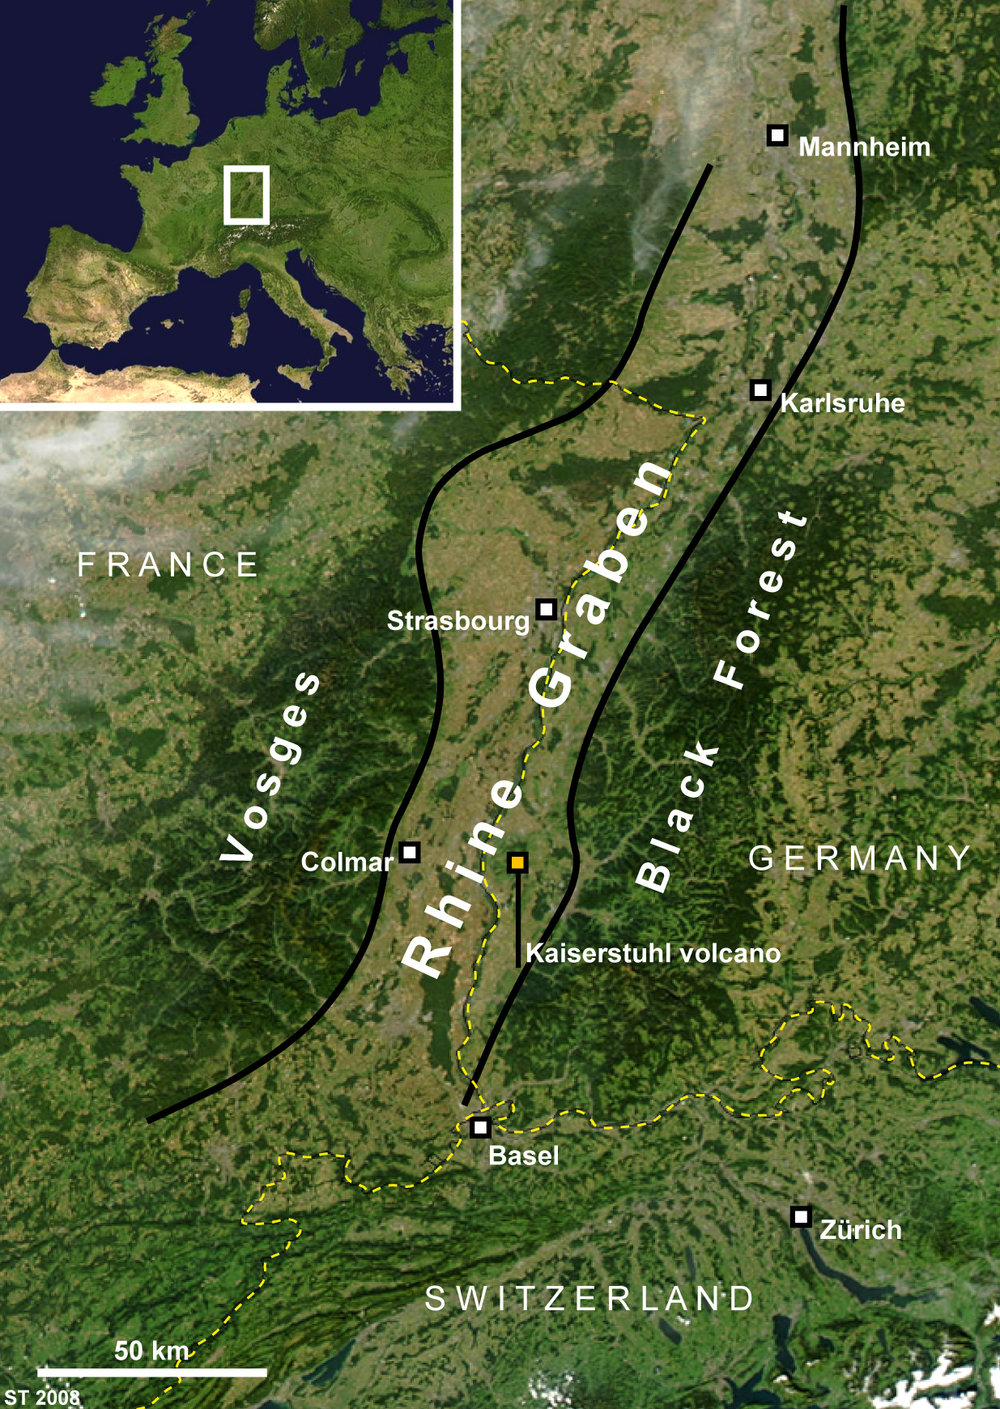 The Valley of the Rhine situated between France's Vosges Mountains and Germany's Black Forest; Alsace is the area in this valley on France's side of the border; Graphic courtesy of Wikimedia.